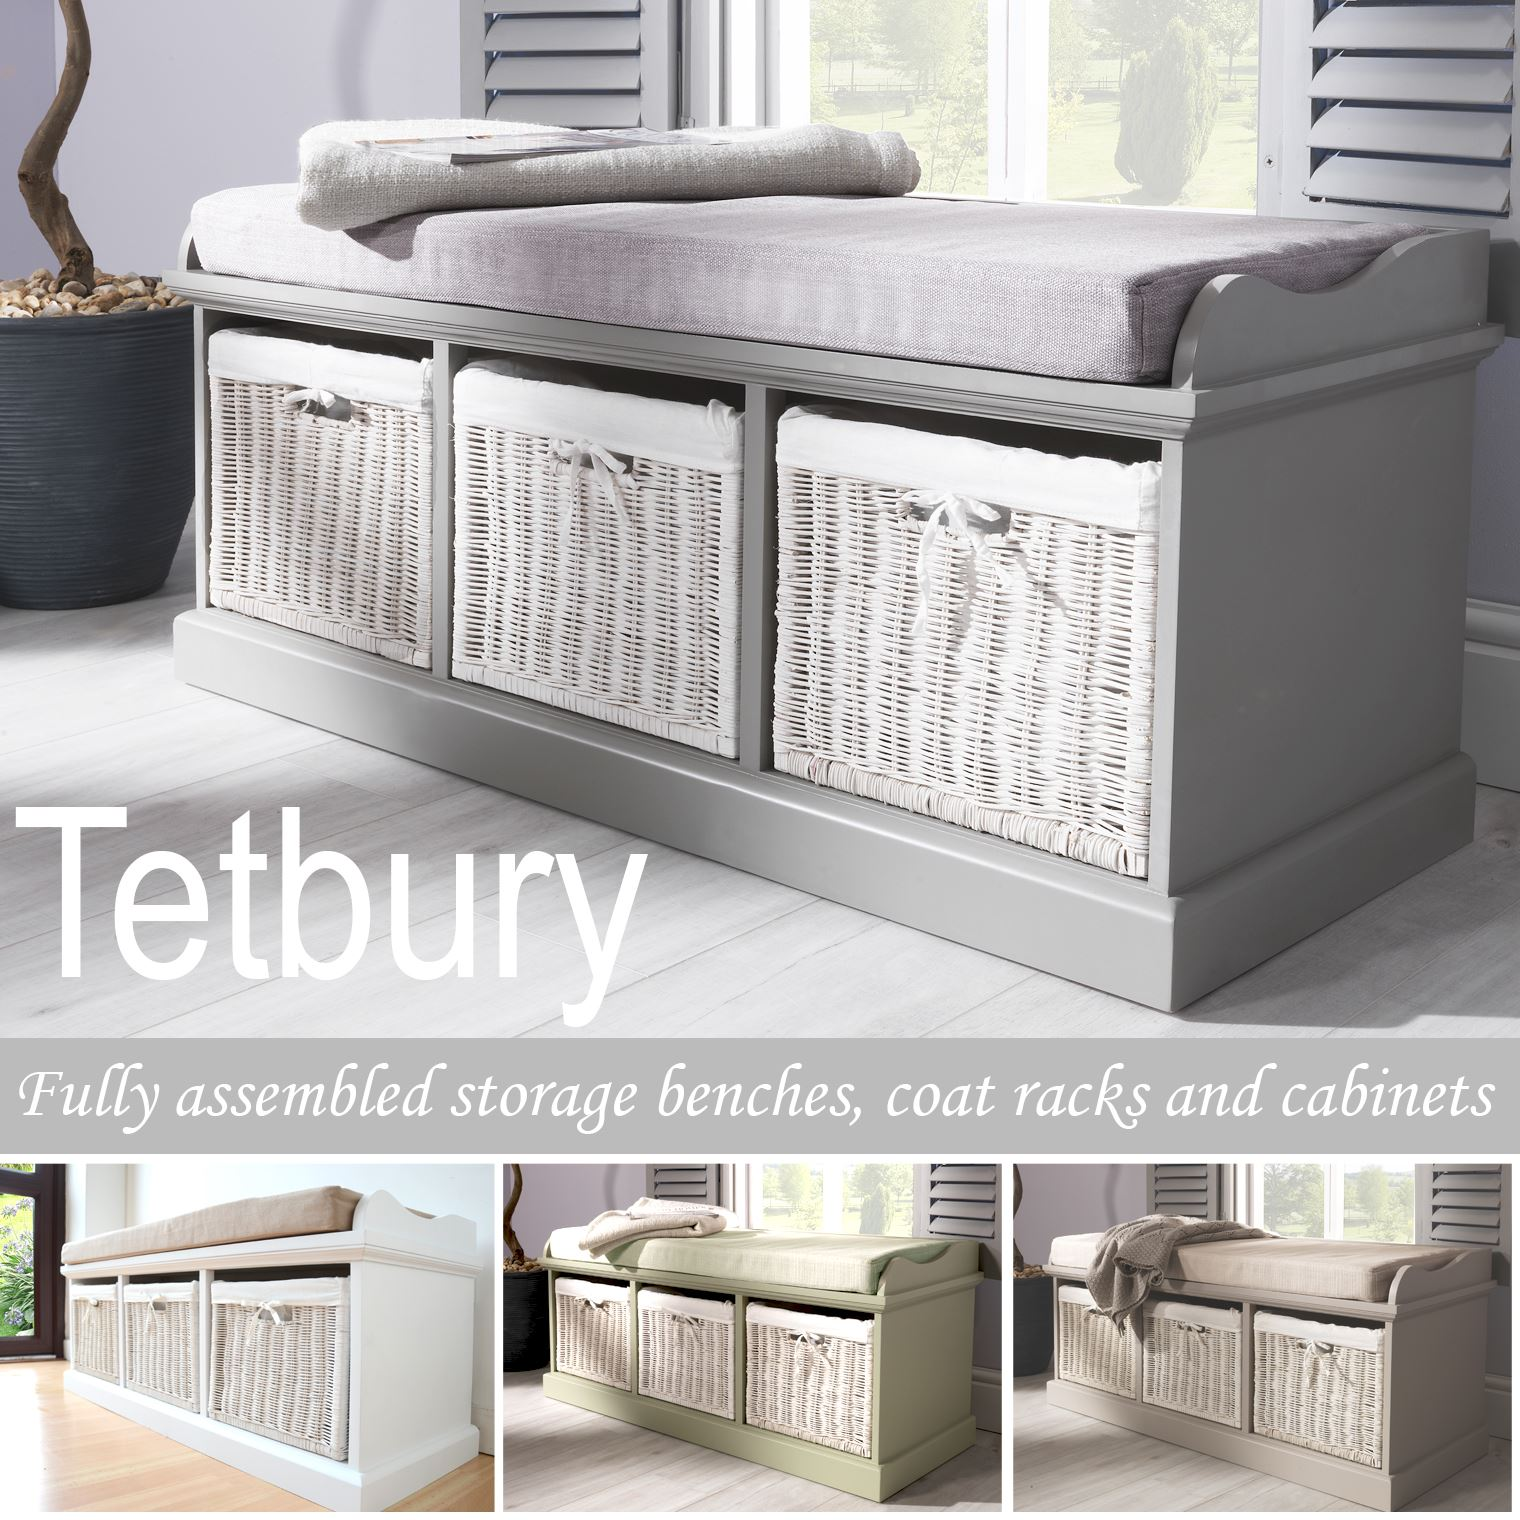 Details About Tetbury Bench With 3 Storage Baskets Sturdy Hallway Bench With Cushion Seat